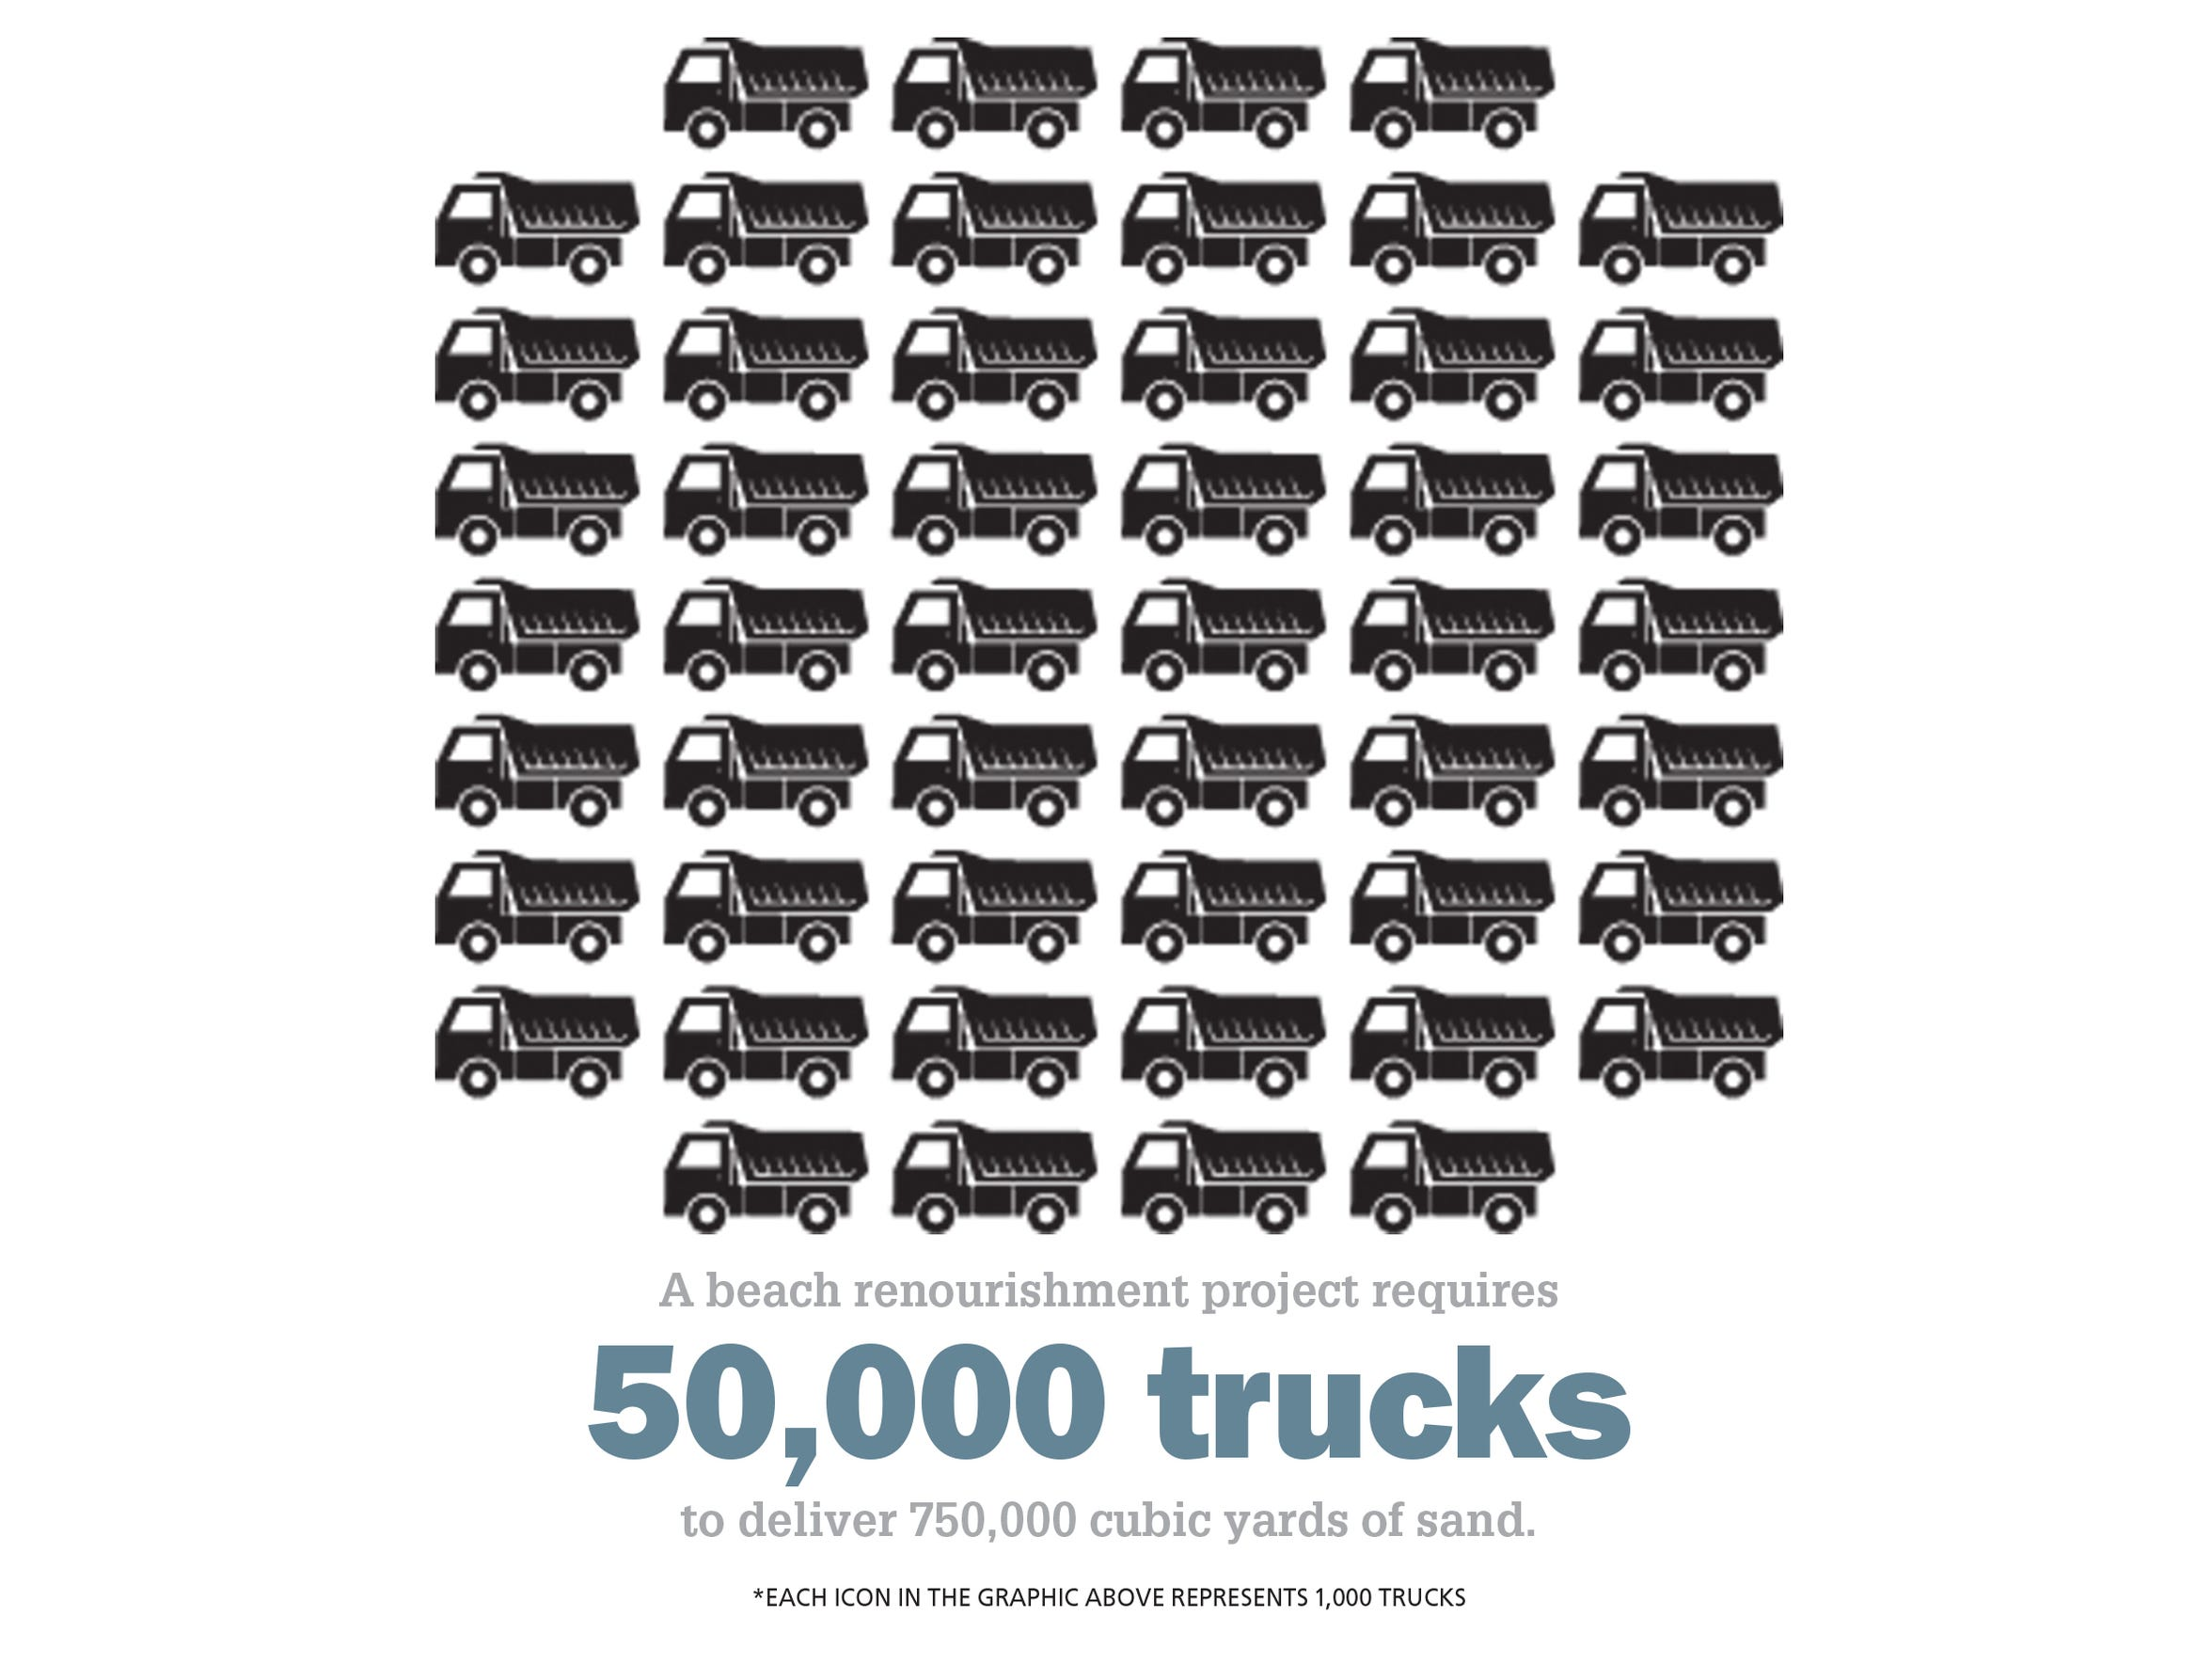 A beach renourishment project requires 50,000 trucks